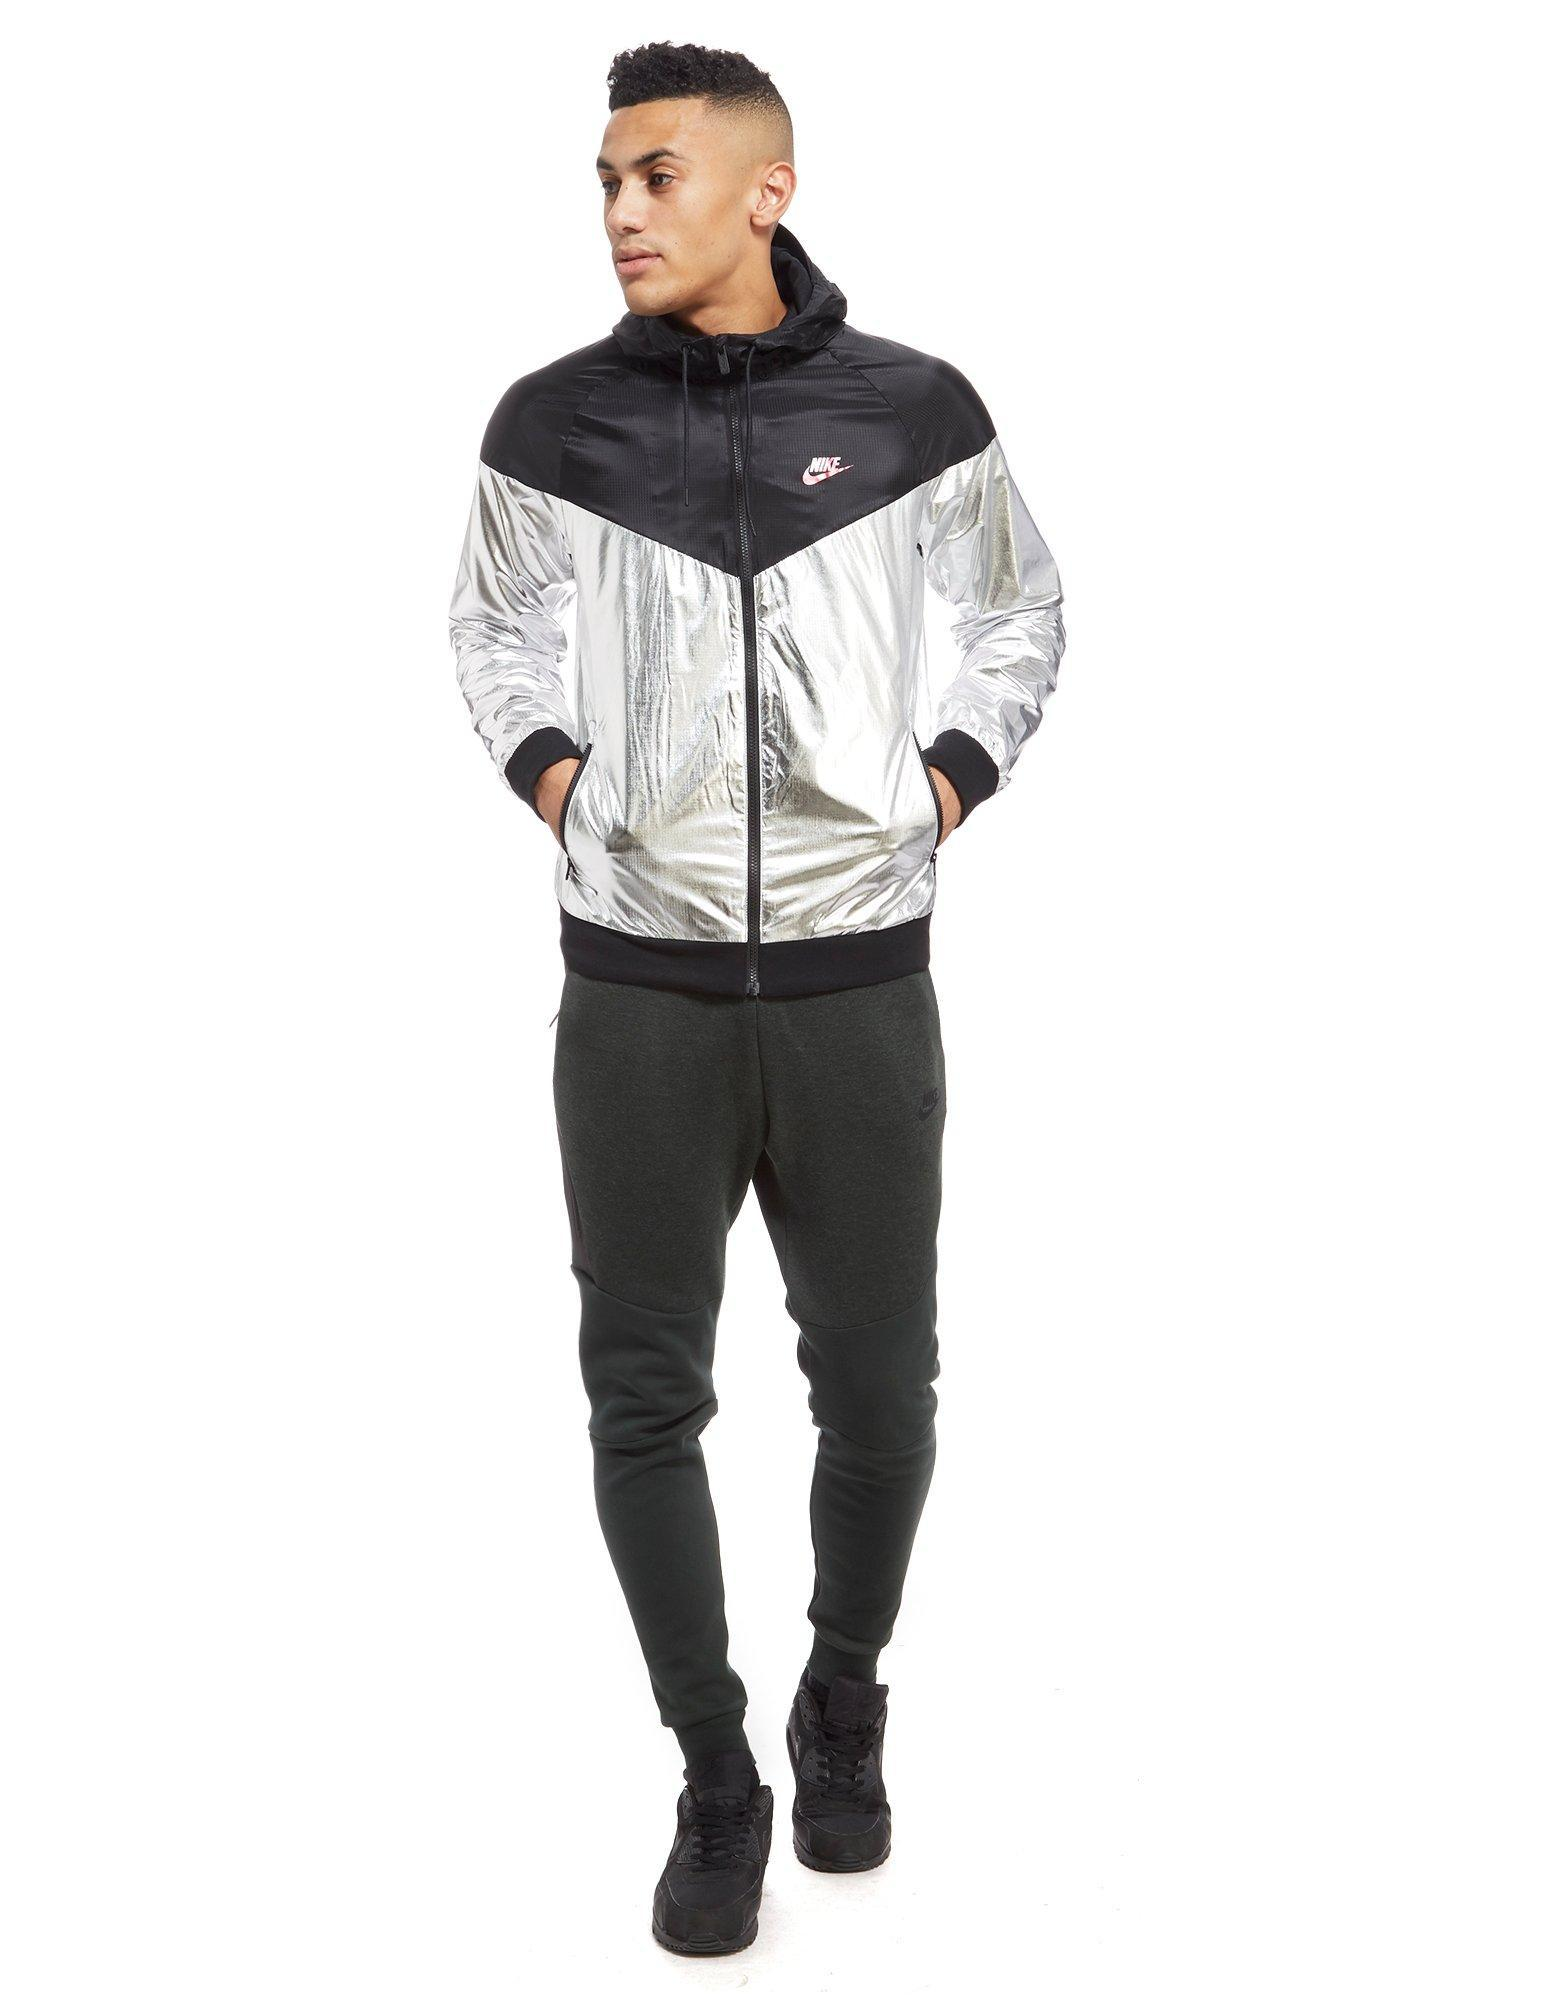 Lyst Nike Foil Jacket In Black For Men